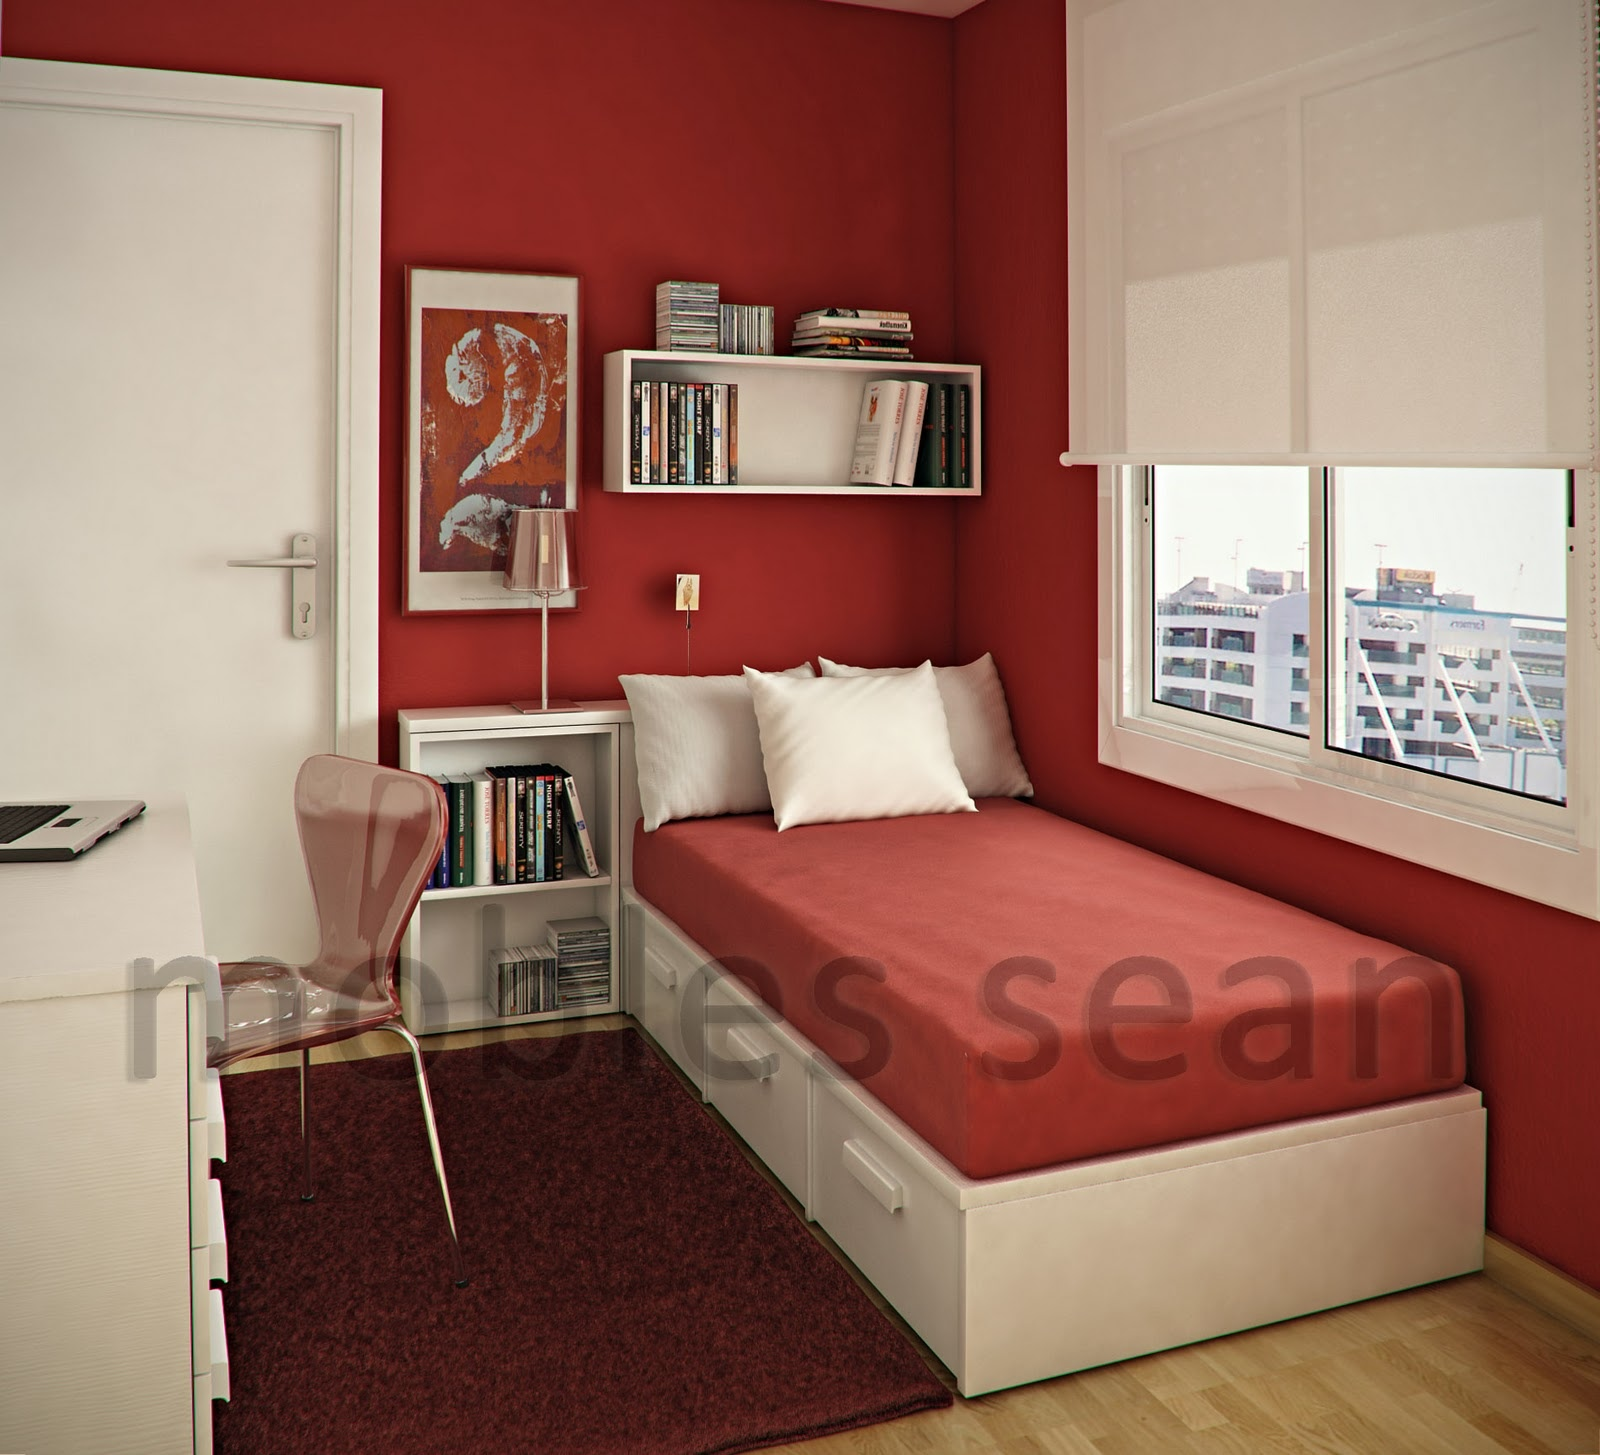 Space saving designs for small kids rooms - Red bedroom decorating ideas ...